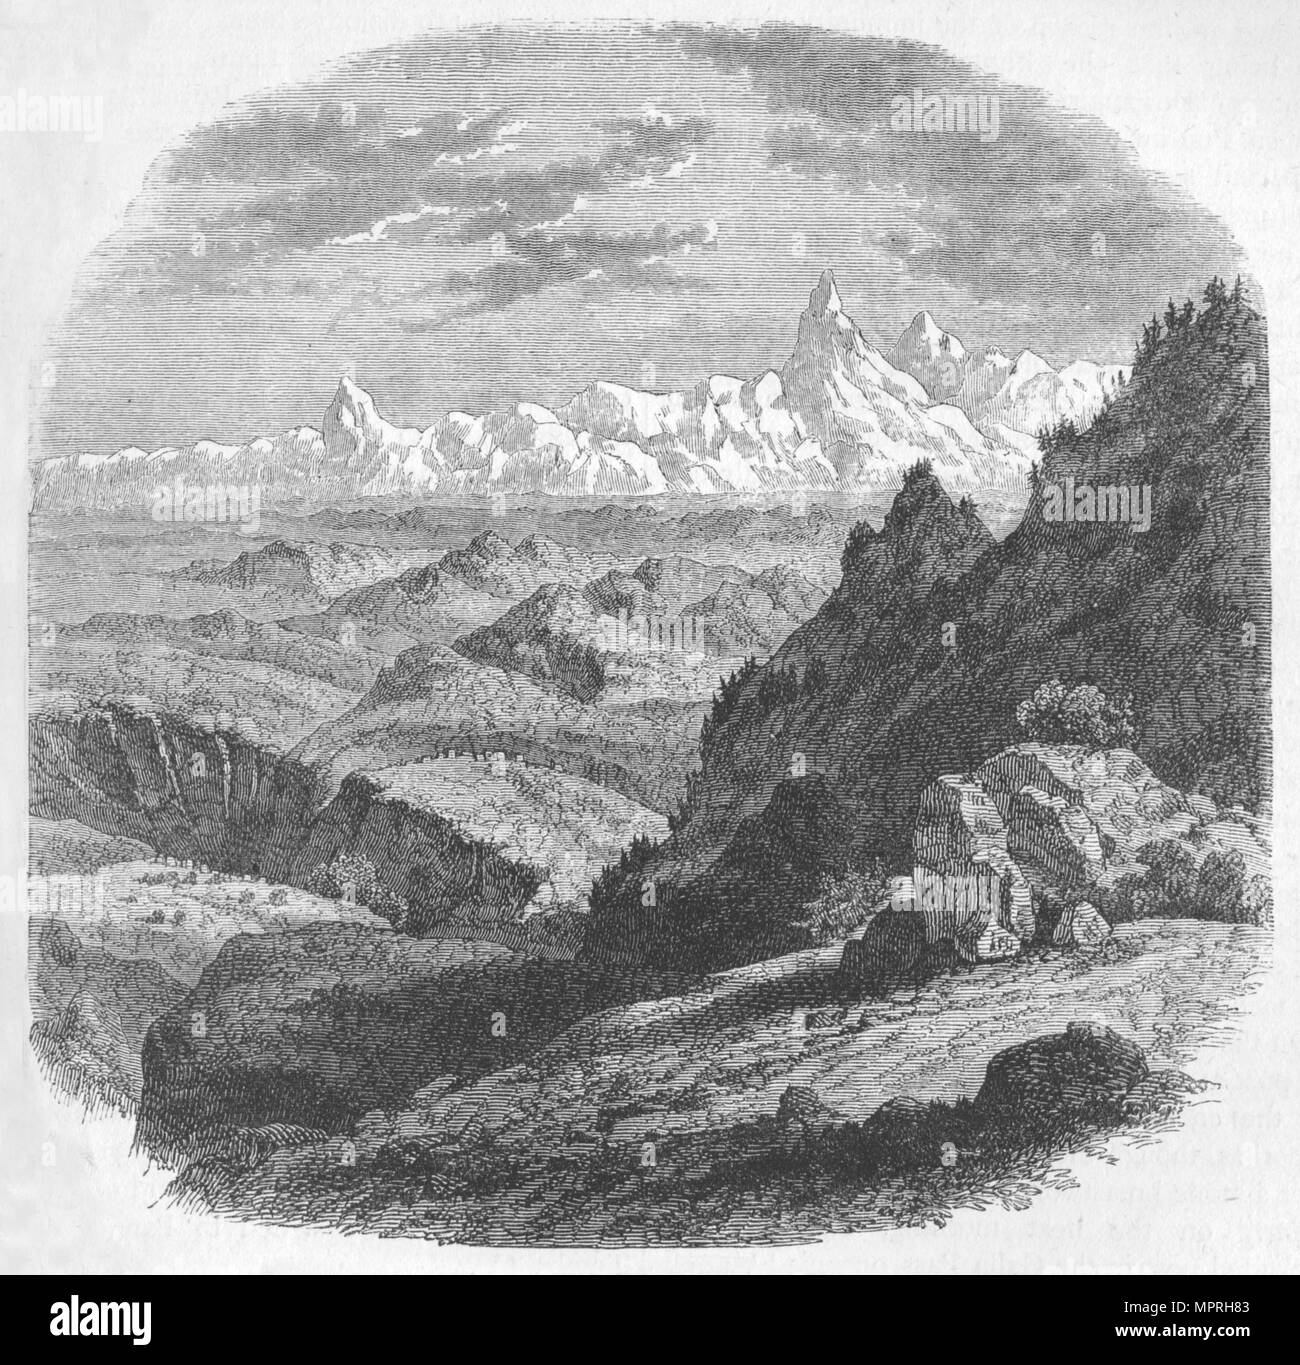 'View of the Himalayan Range', c1880. Artist: Unknown. - Stock Image